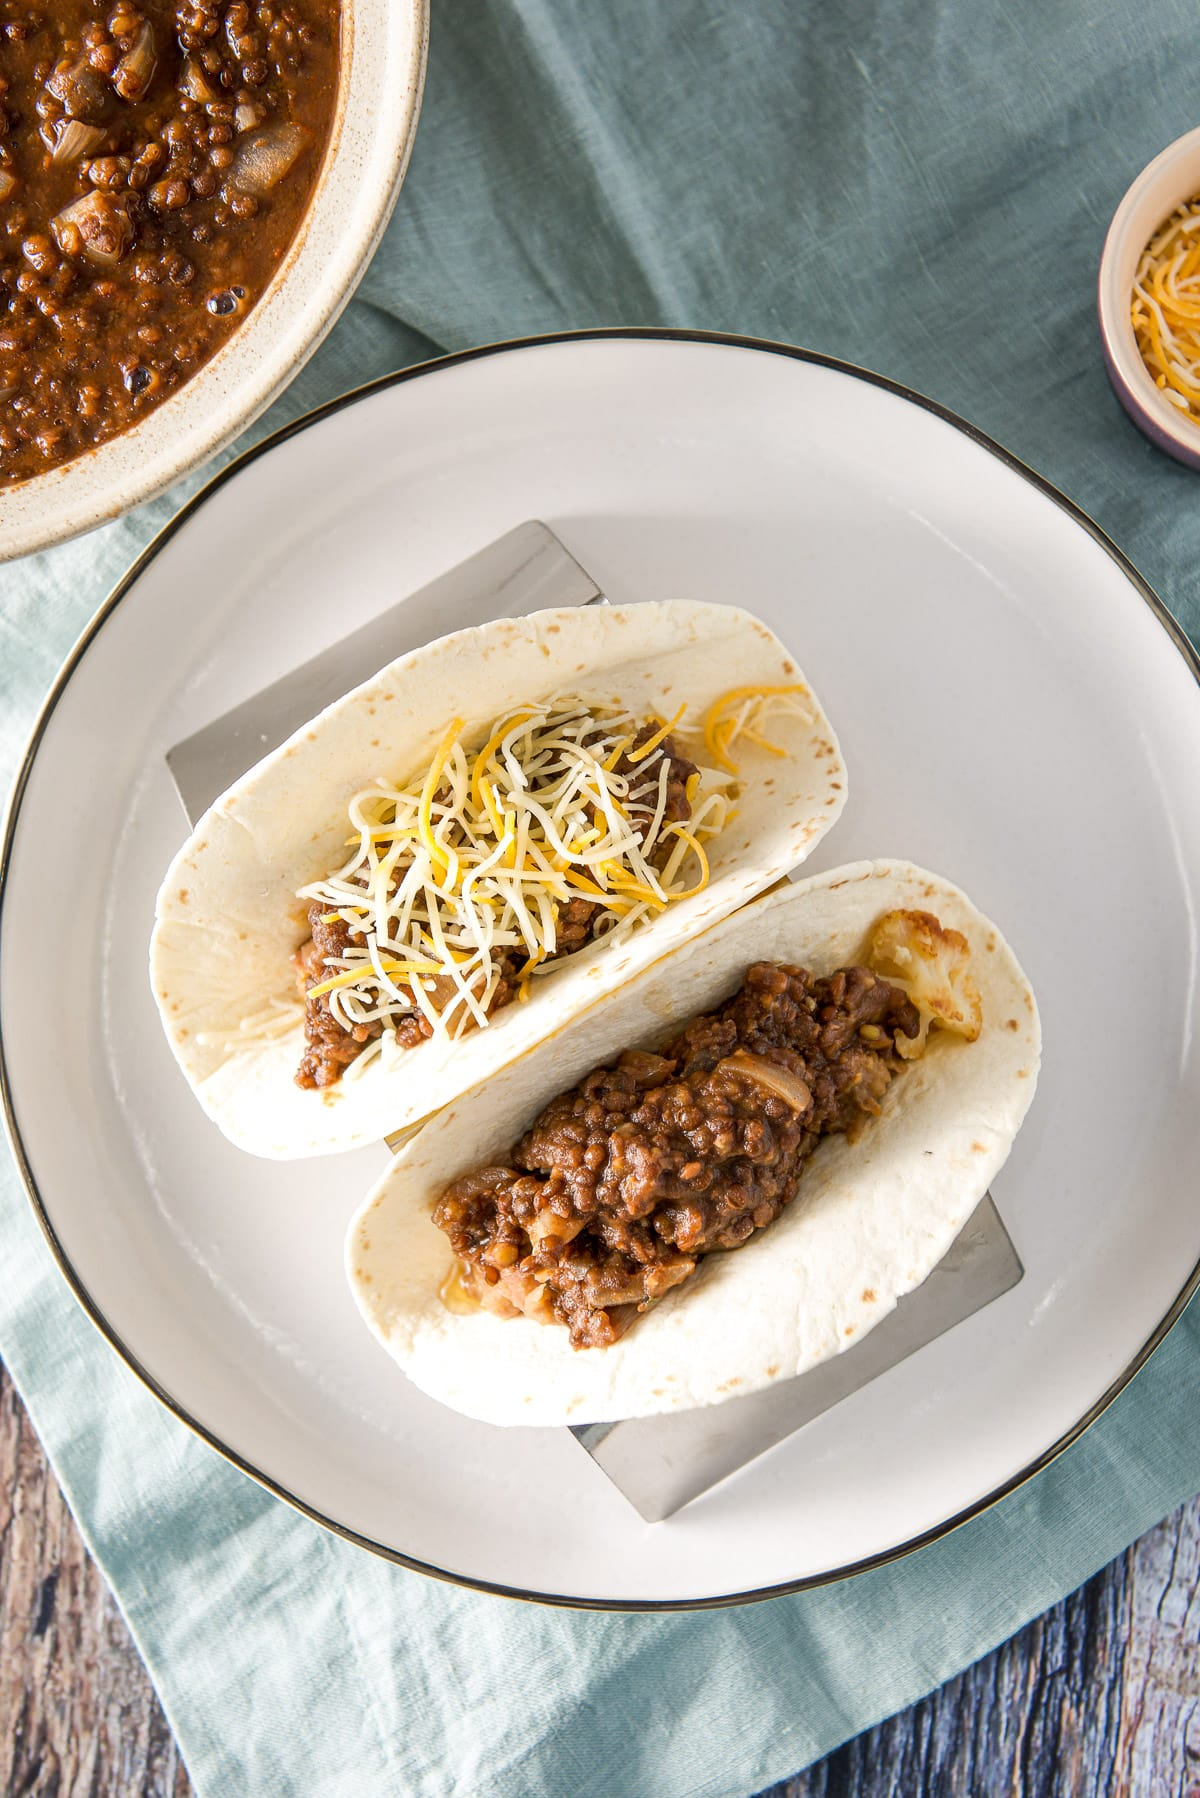 Overhead view of a plate with two tacos on it with lentils off the the side